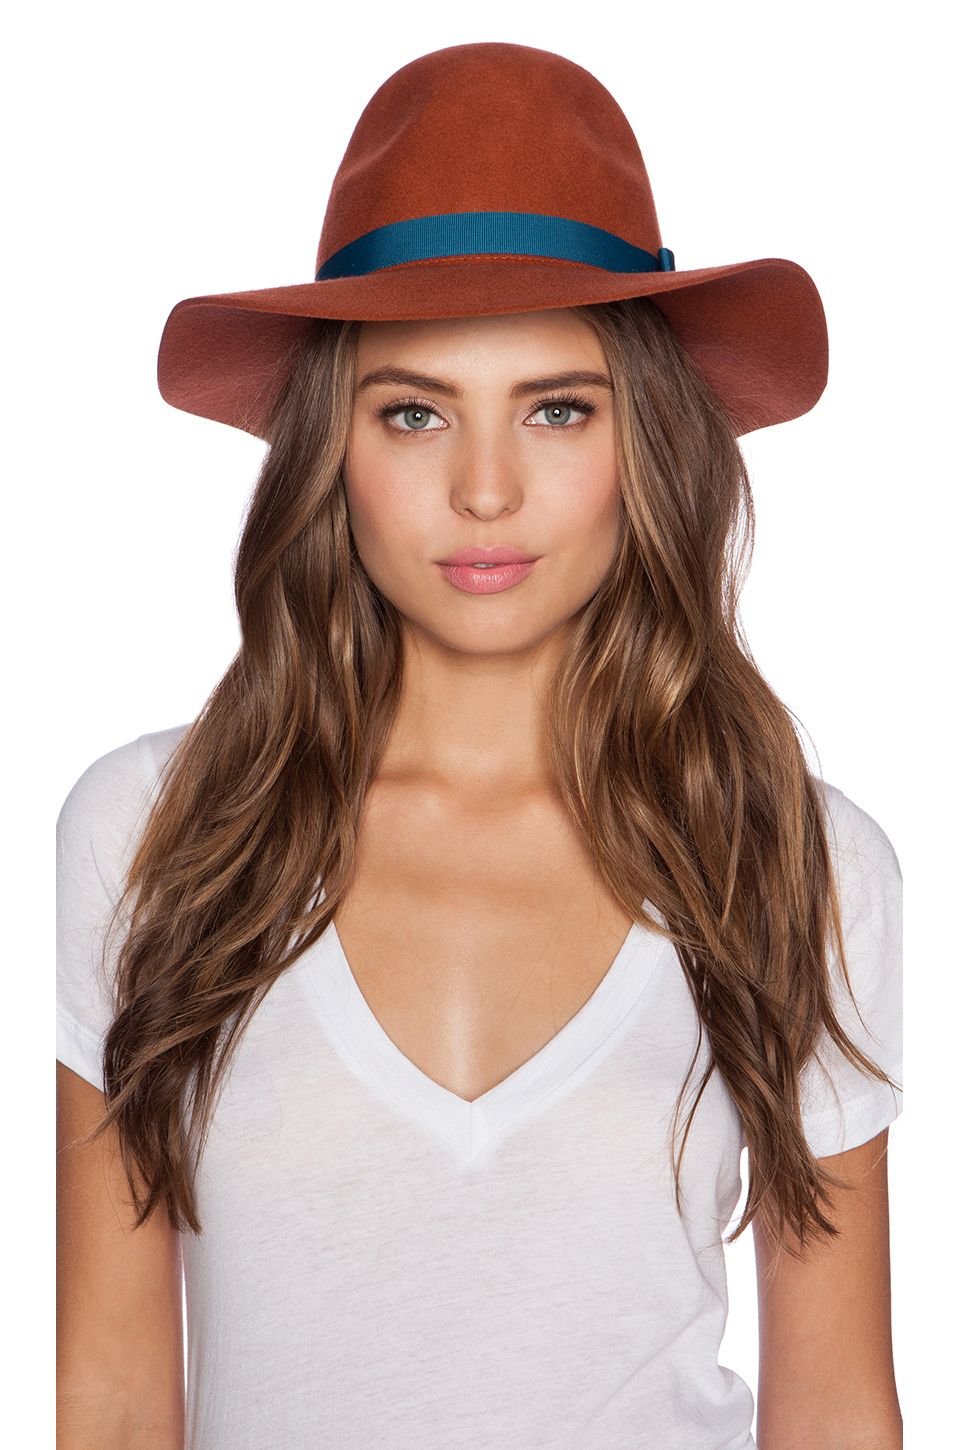 Brixton Dalila Hat in Coral  7c1d26568a57